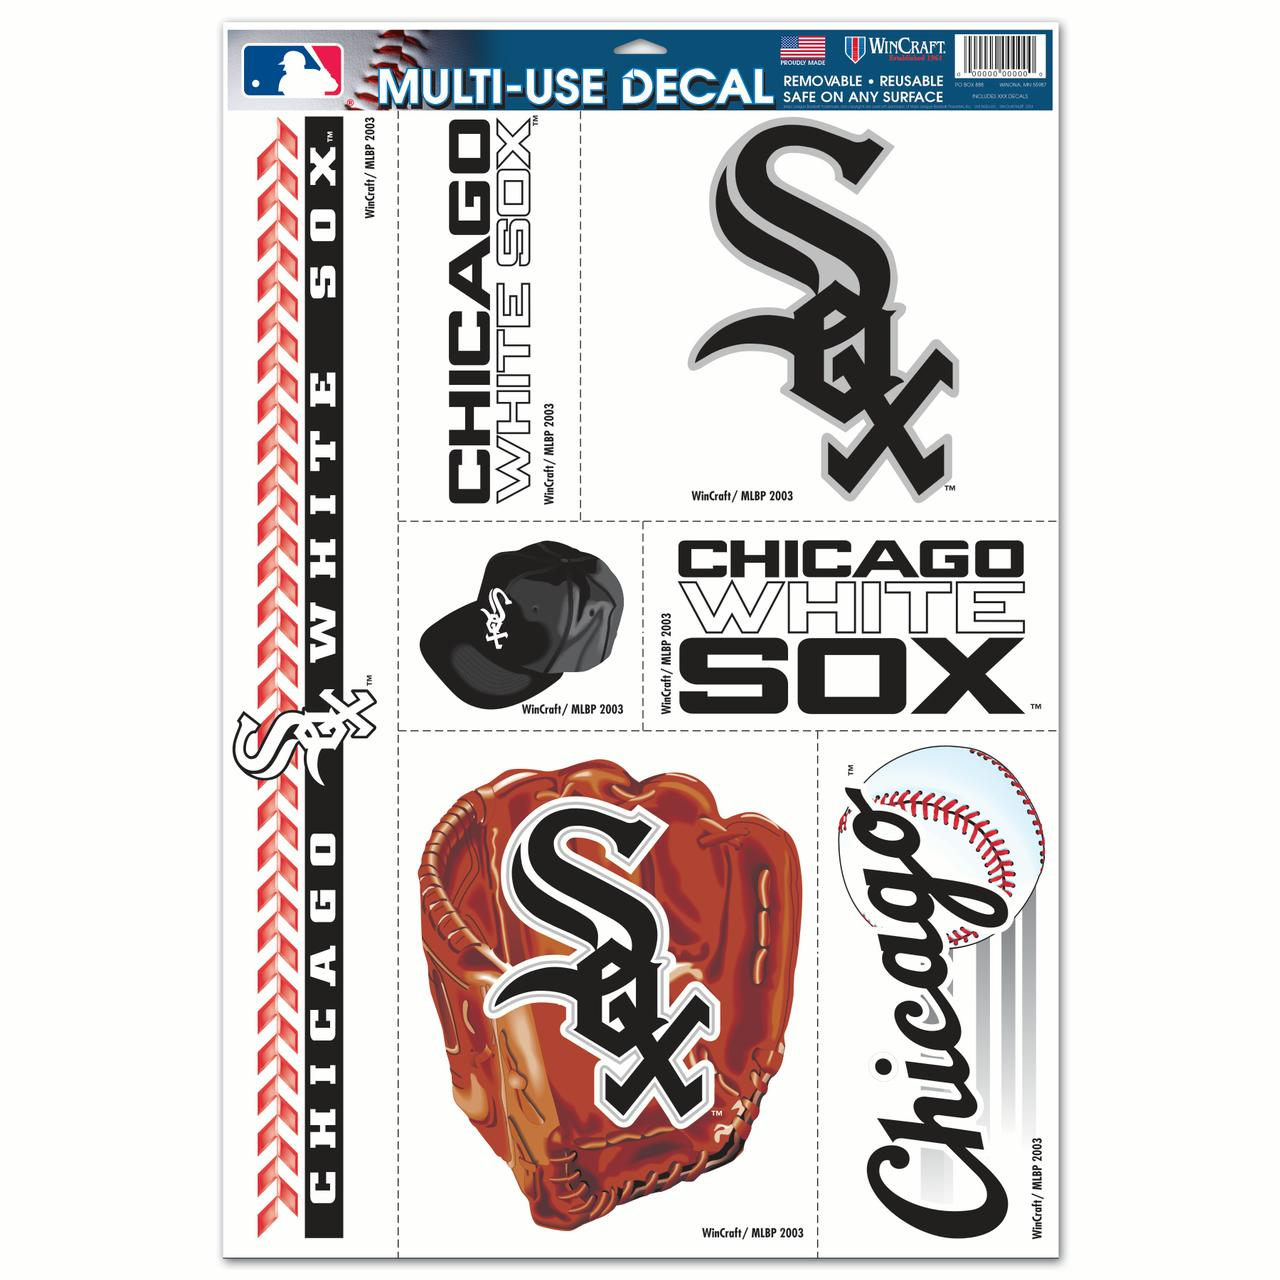 "Chicago White Sox WinCraft 7-Piece 11"" x 17"" Multi-Use Decal Sheet - No Size"